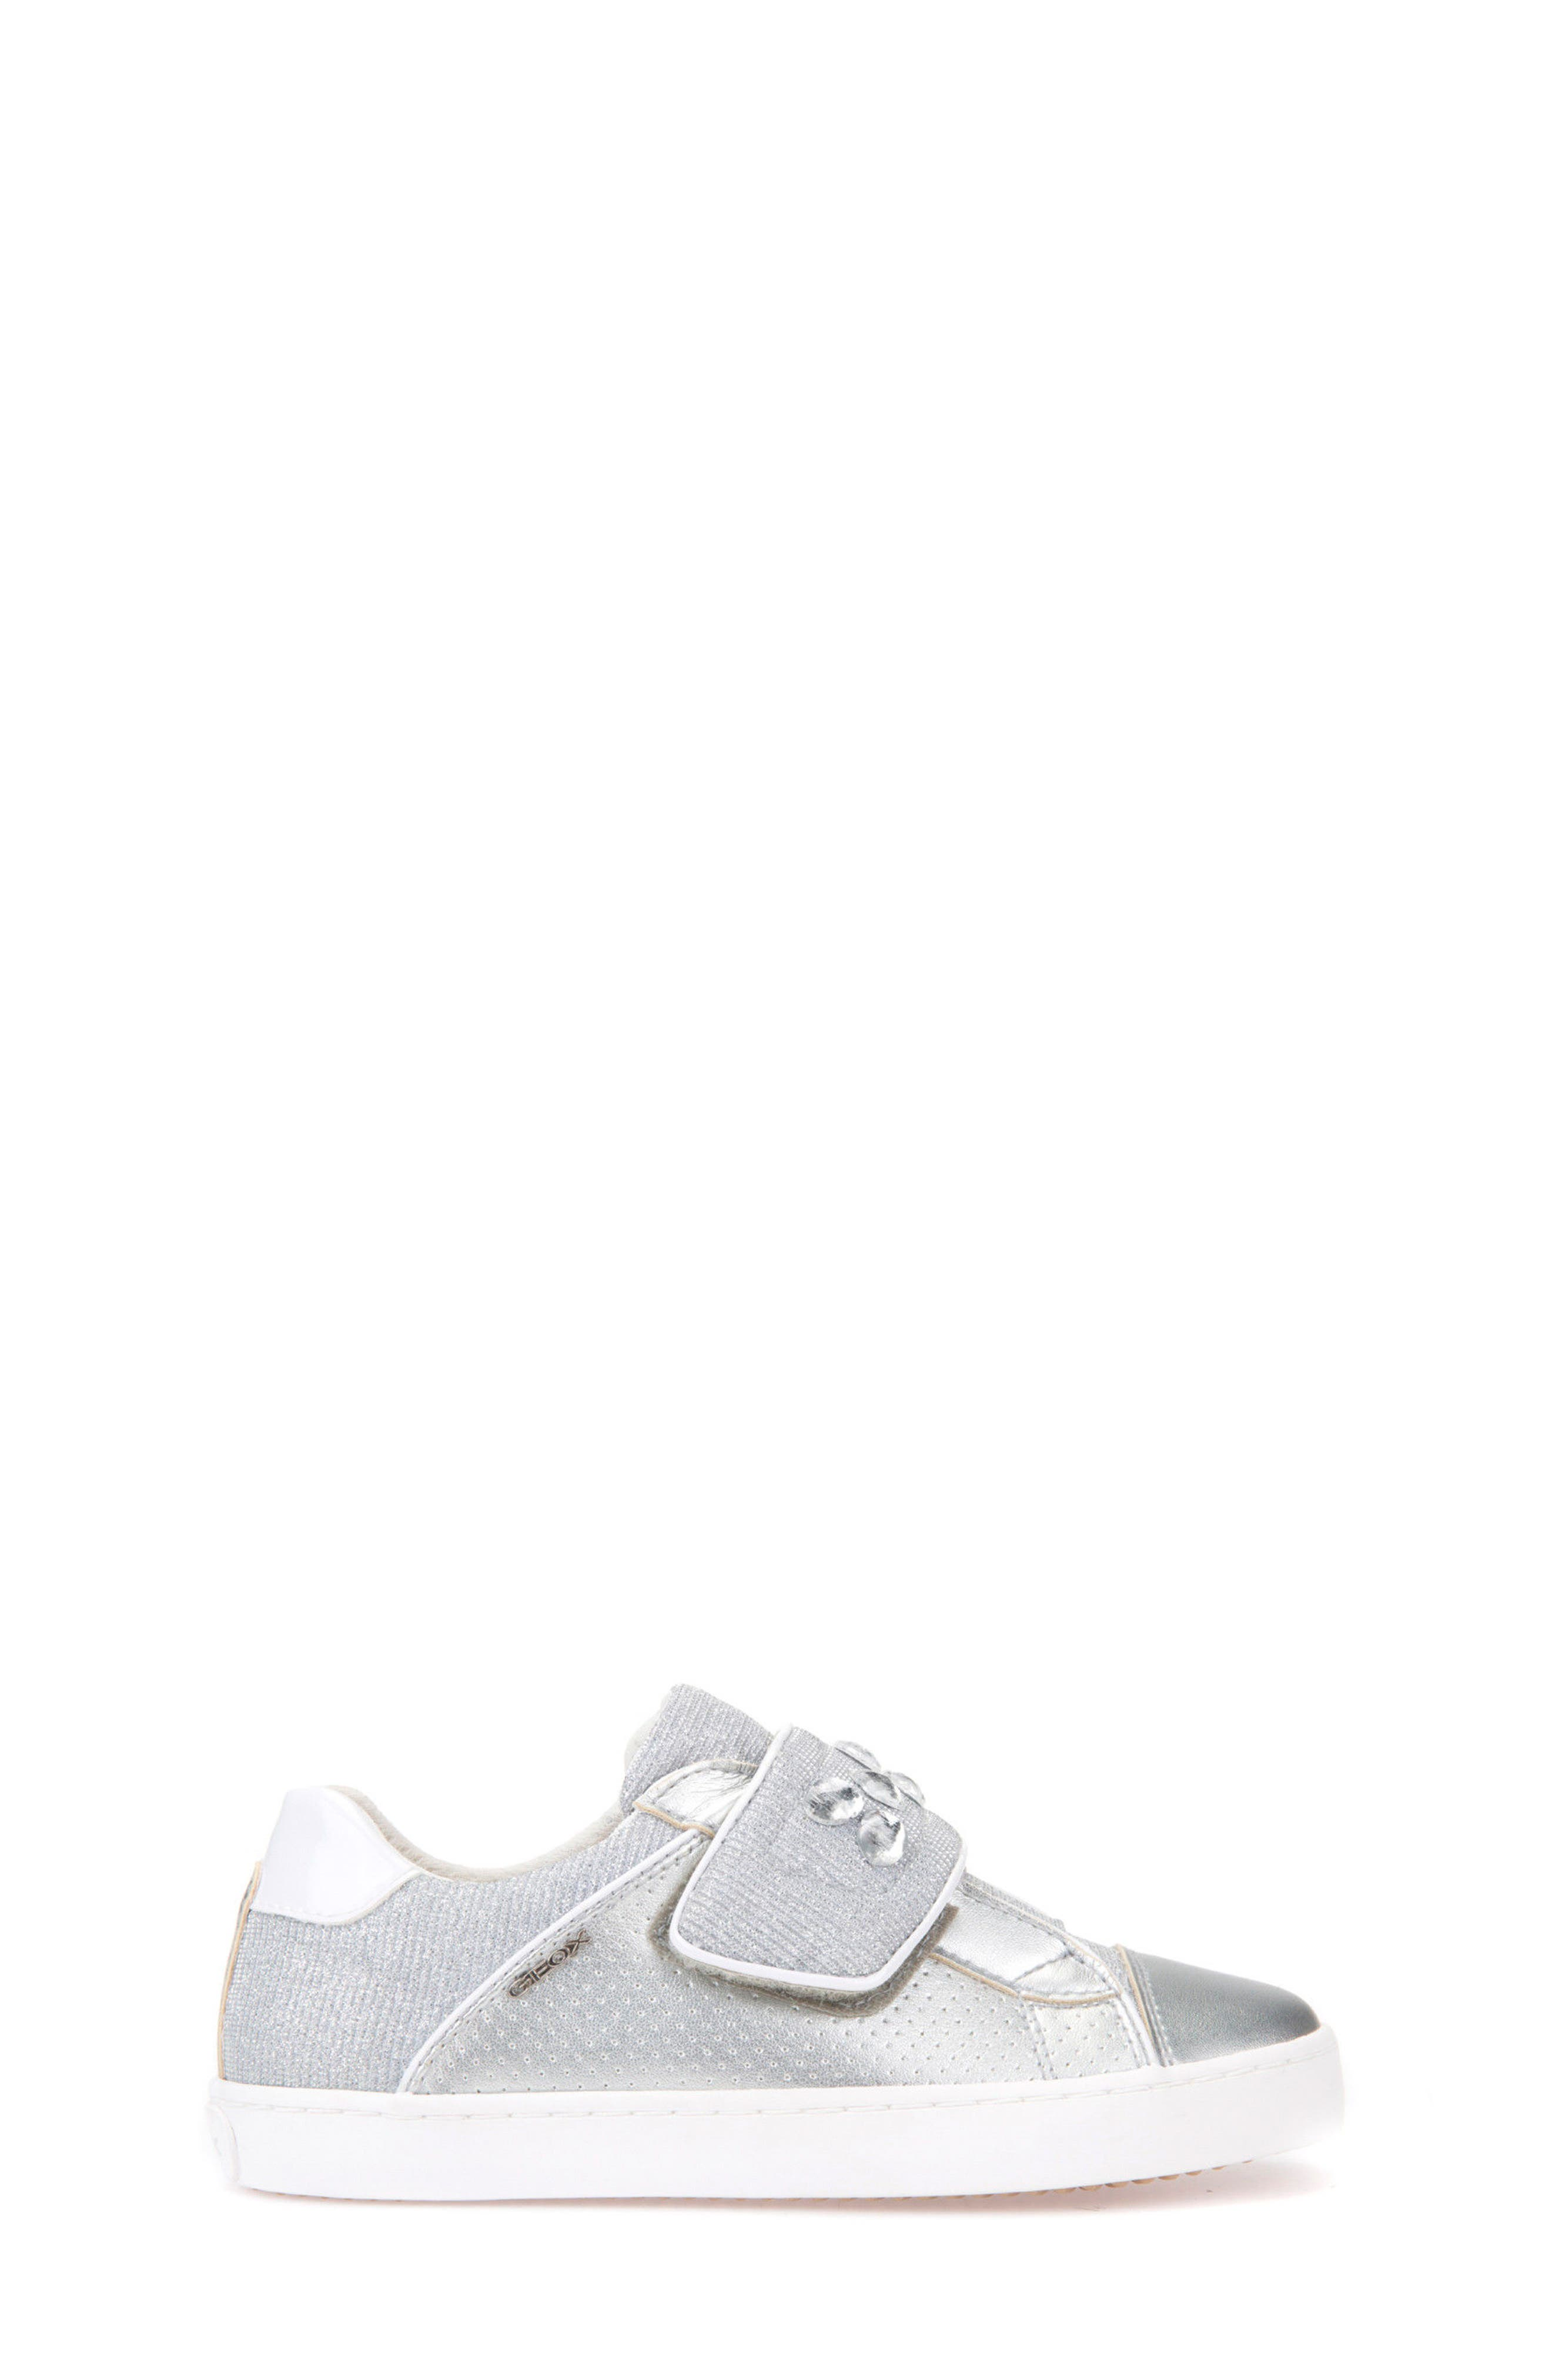 Kilwi Metallic Embellished Sneaker,                             Alternate thumbnail 3, color,                             Silver